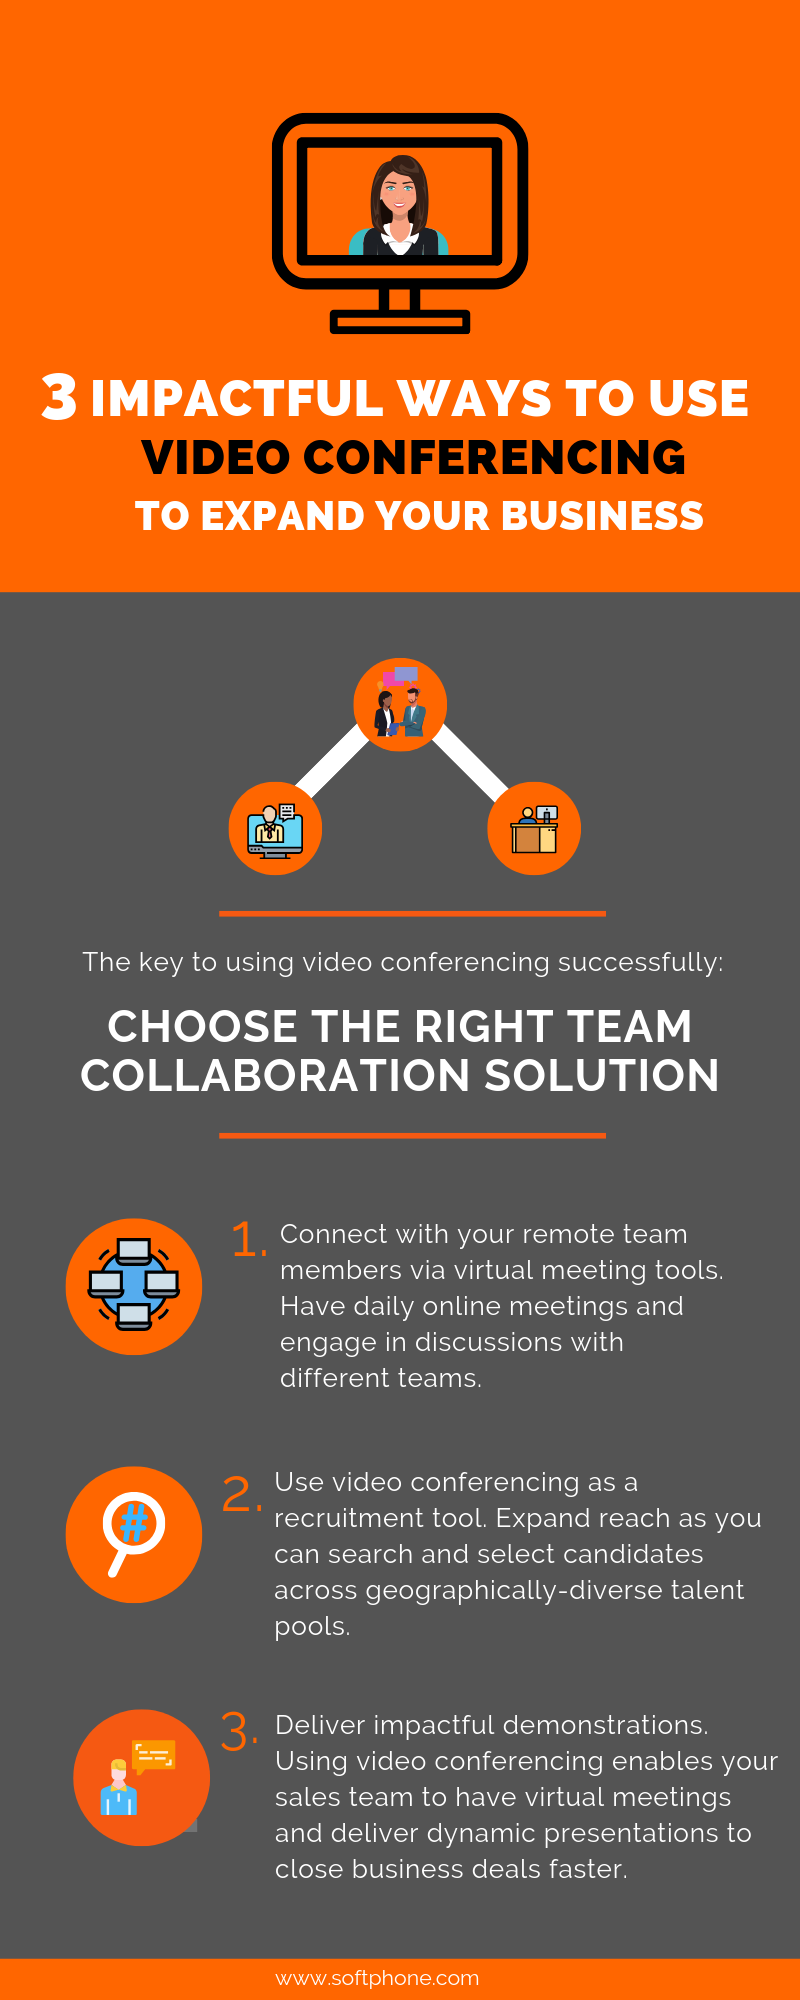 Chose the right video conferencing tool to run effective online meetings